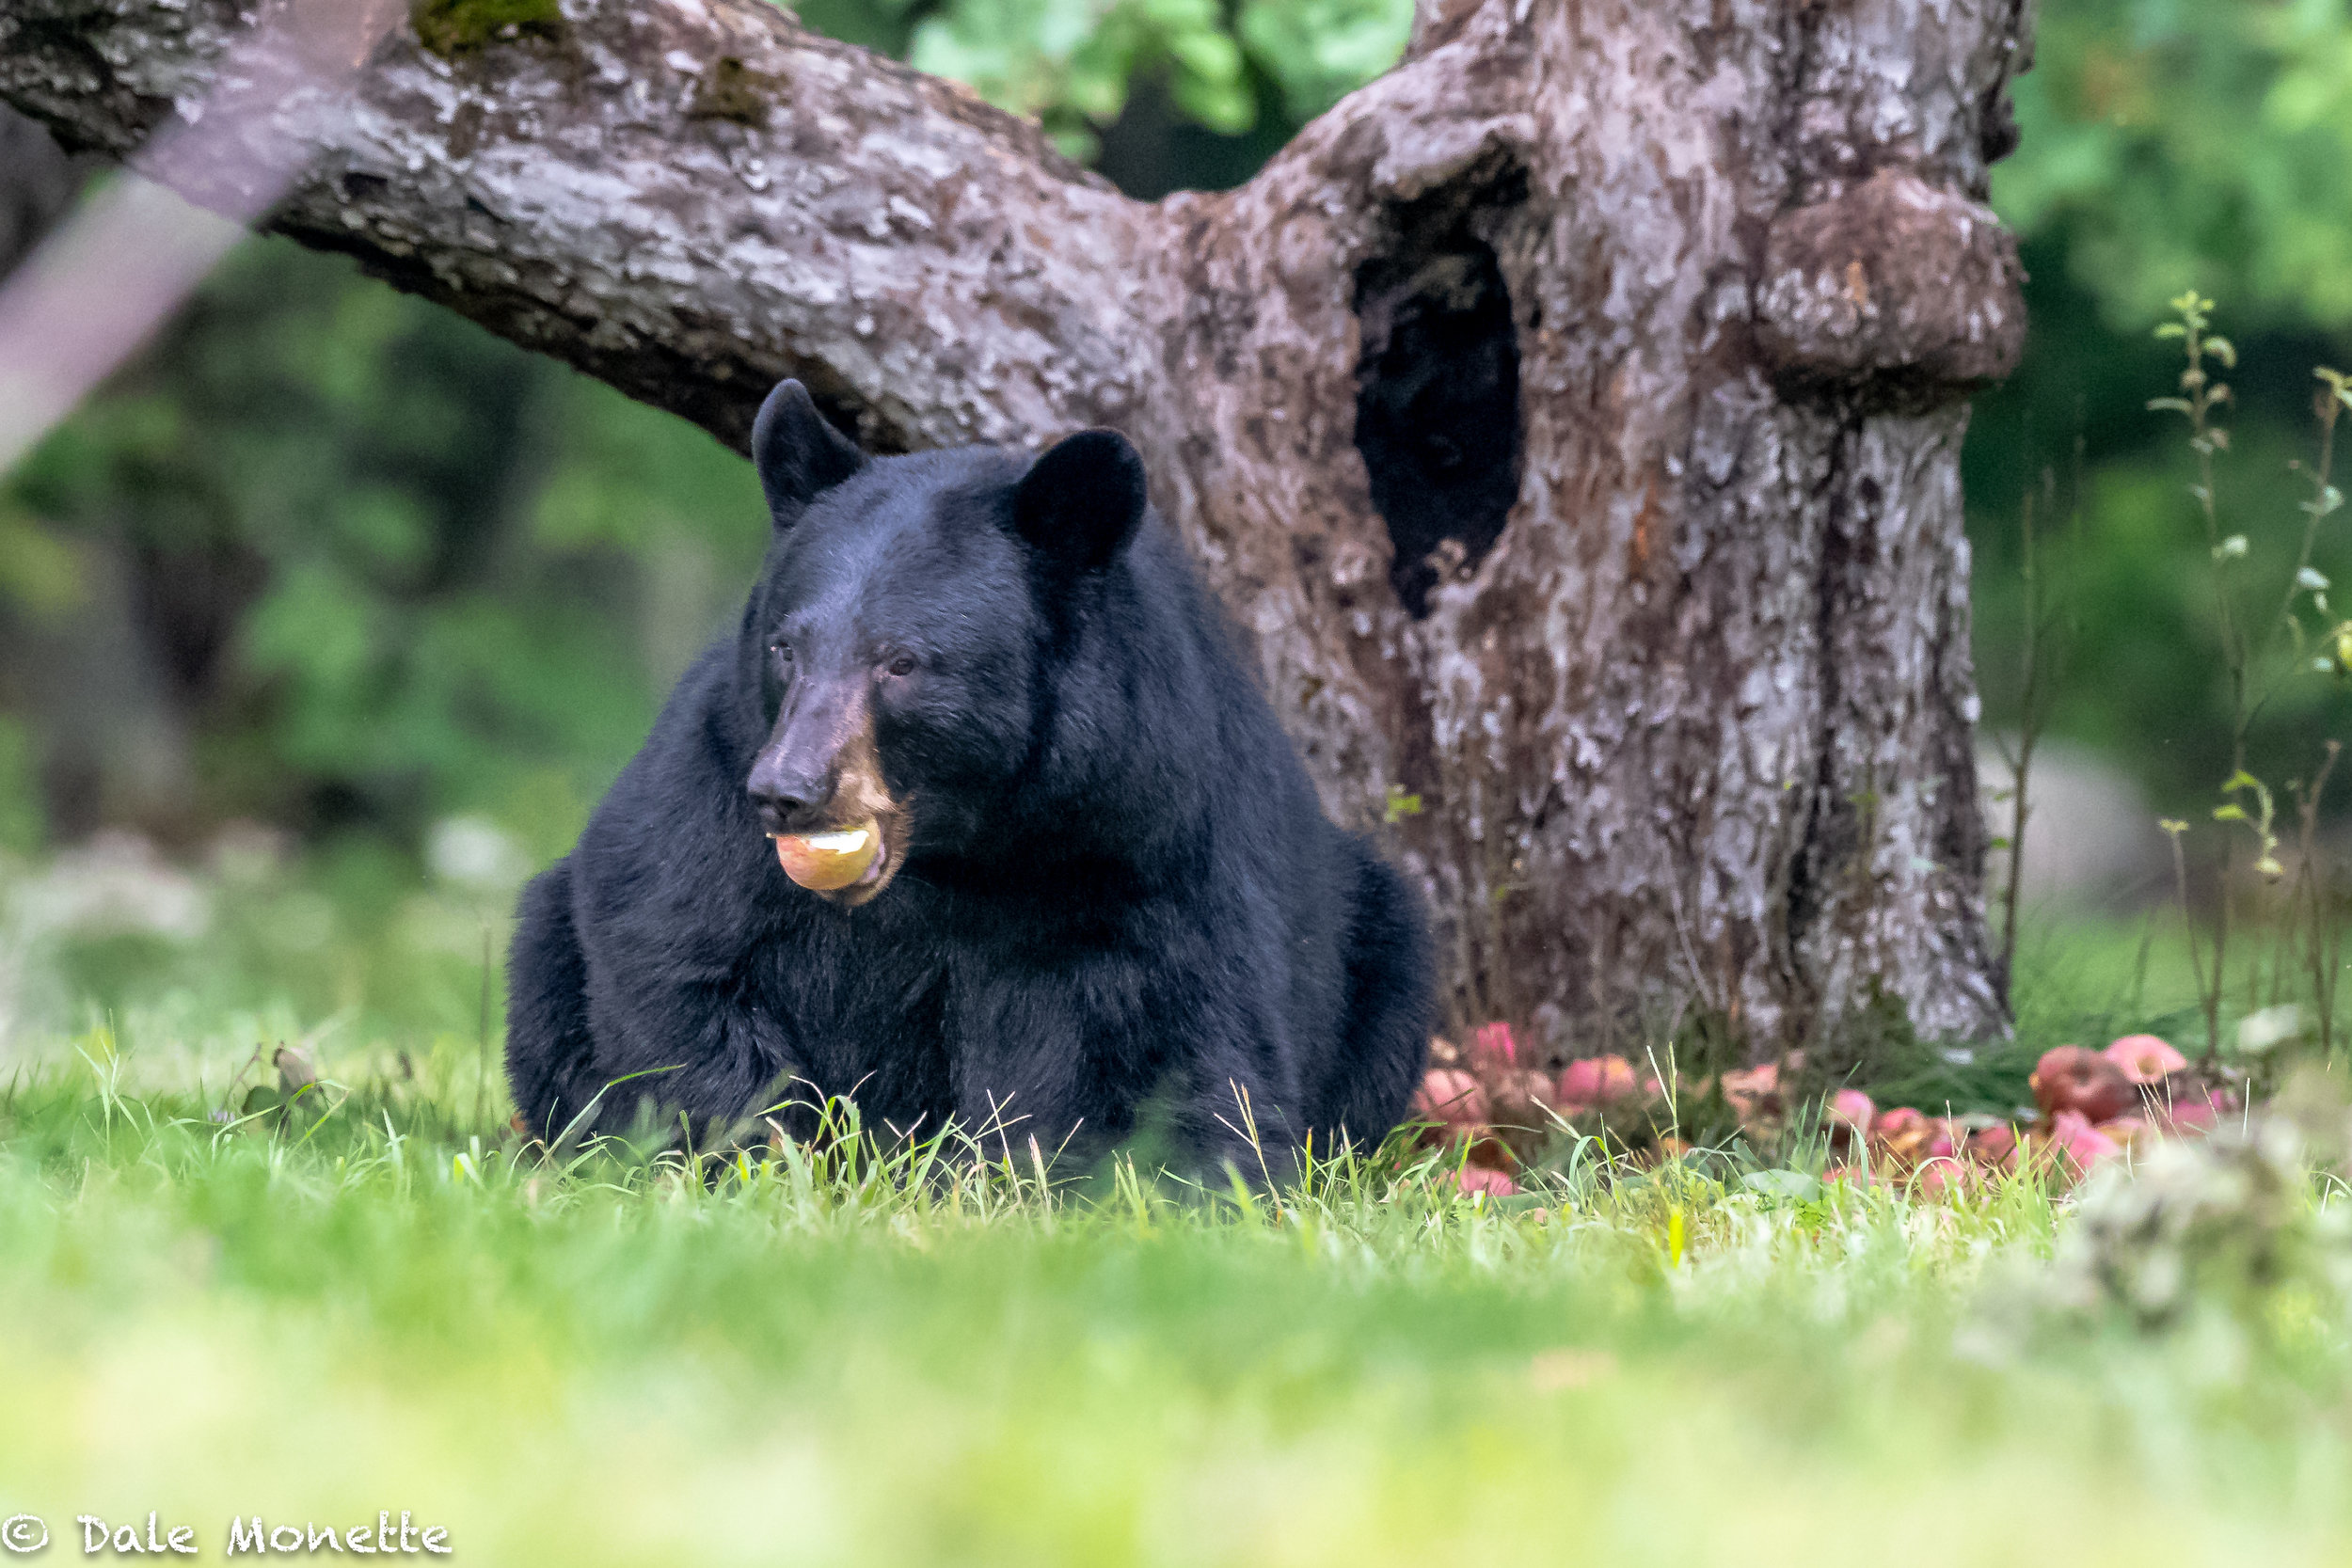 The same bear as in the last image…As you can see here, black bears love apples. This bear found the mother lode ! A black bear can eat a bushel (46 pounds) in one setting.  I'd puke !!